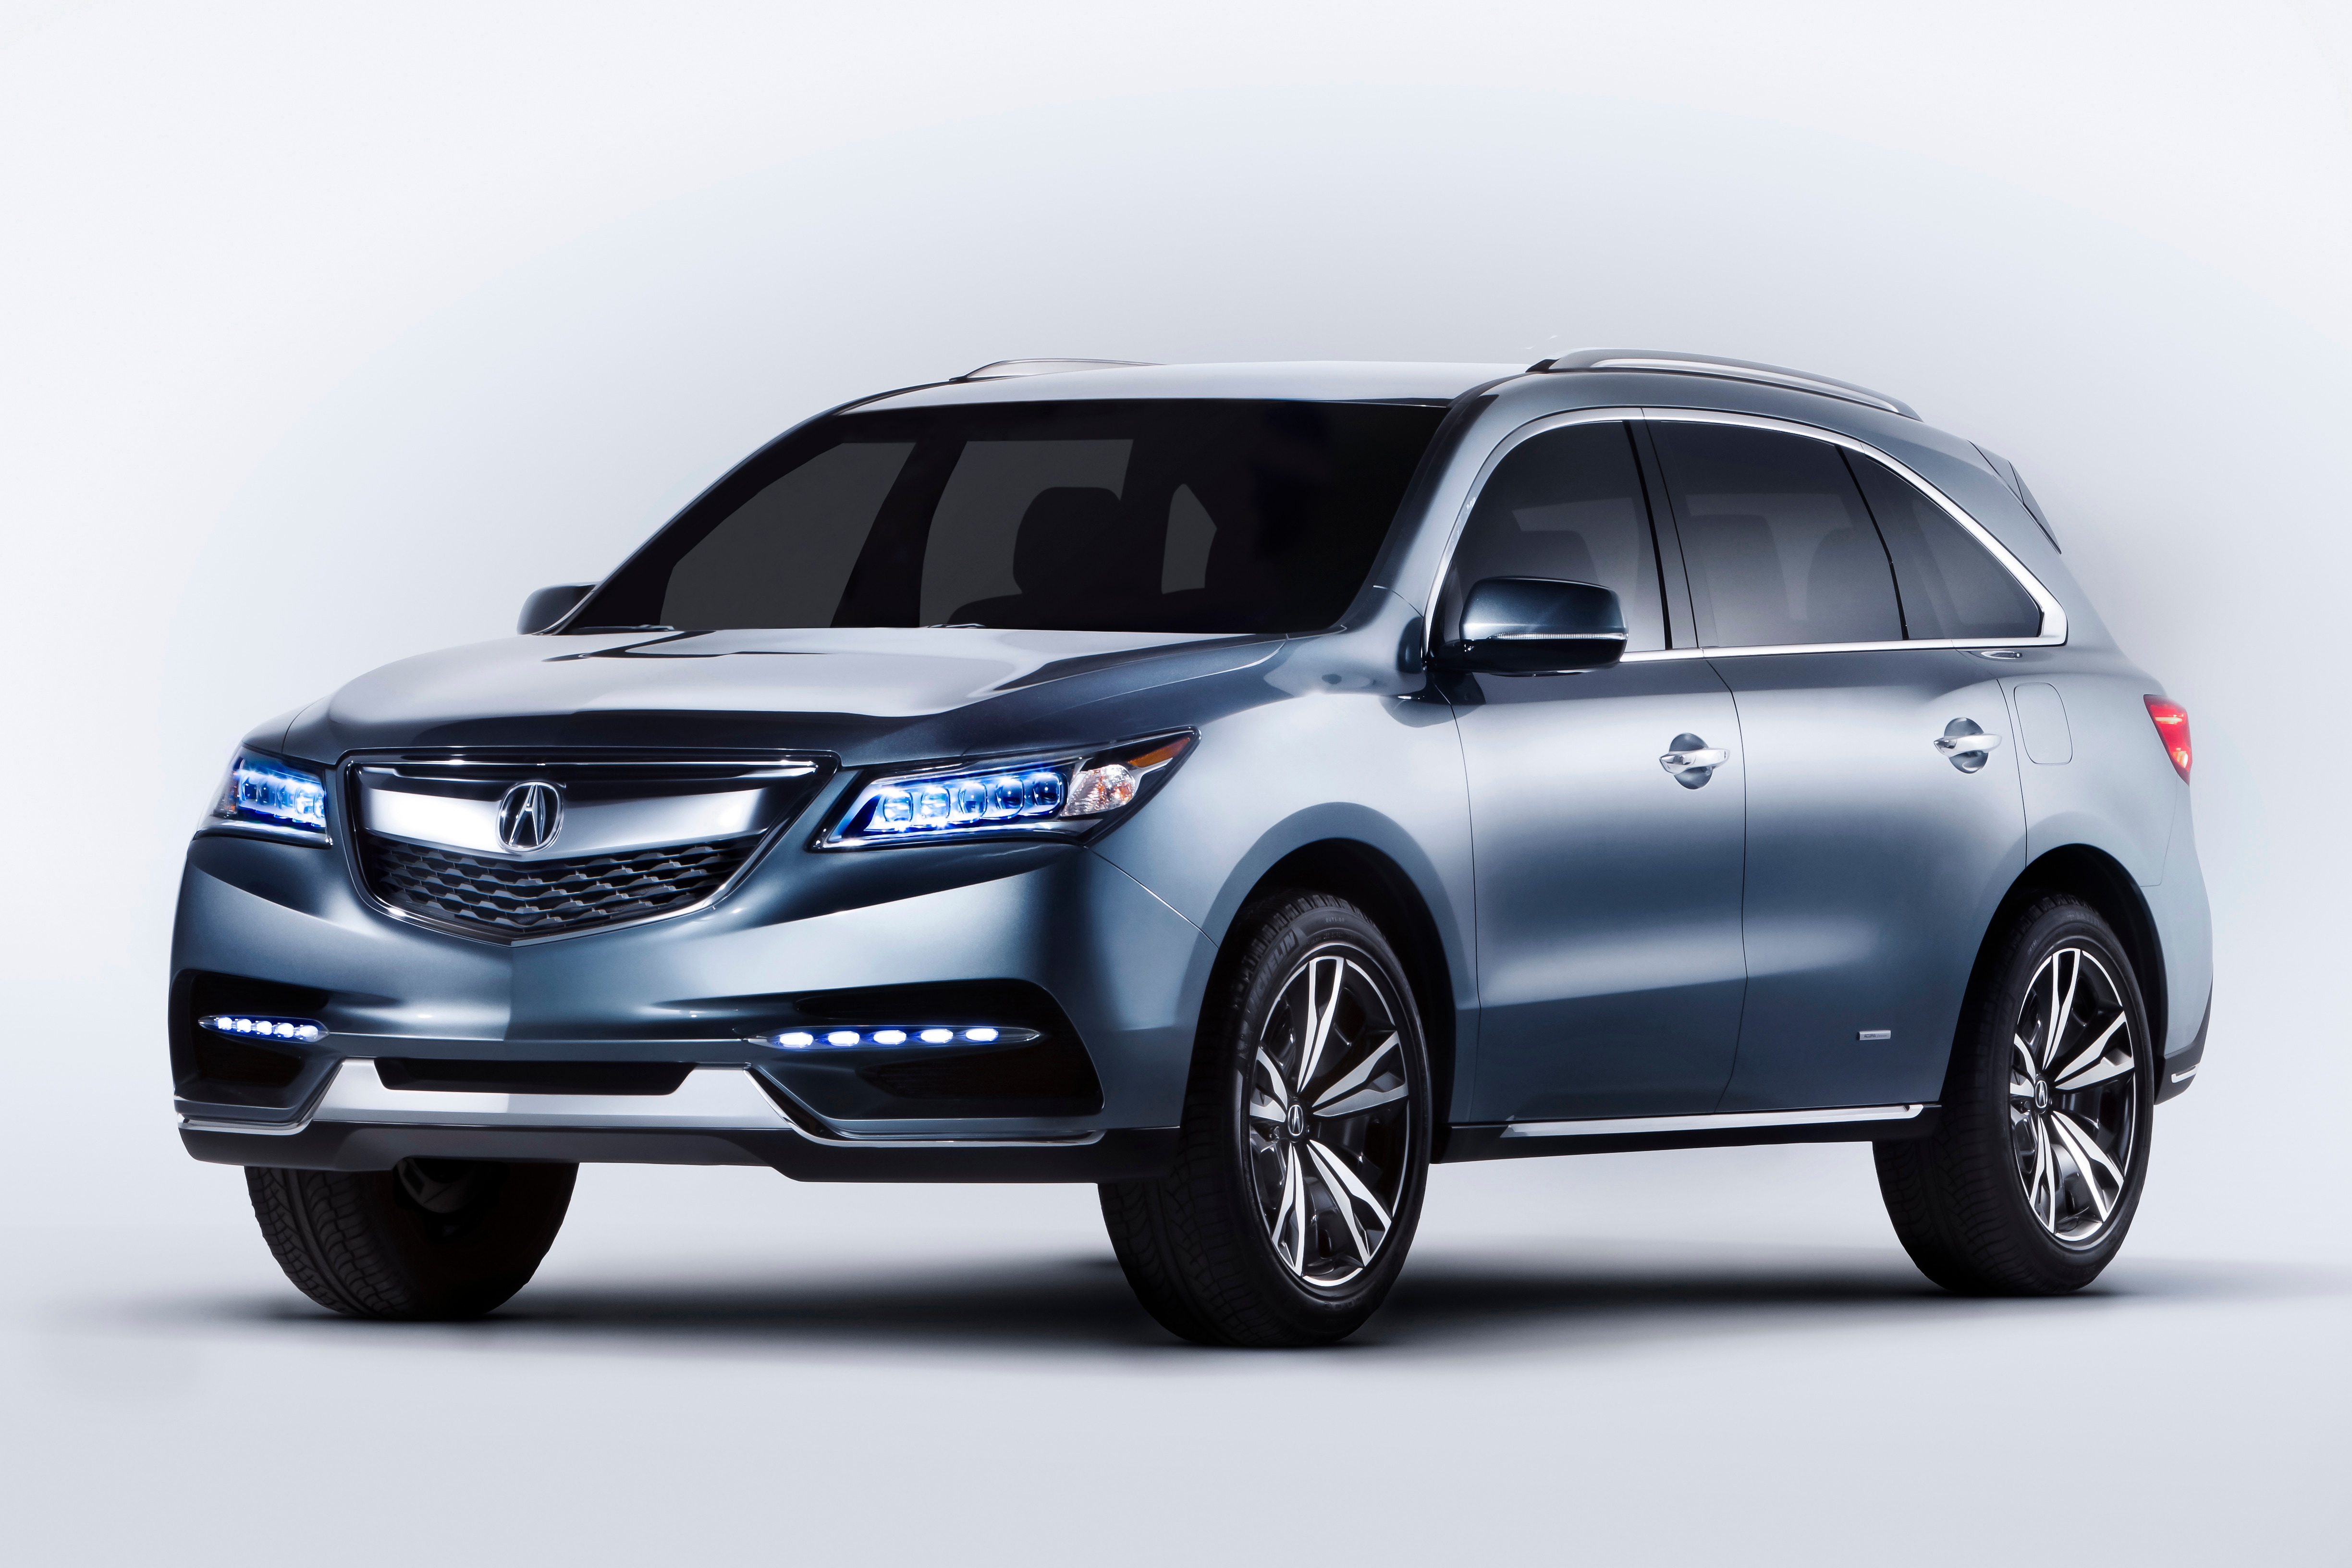 ... Hatchback Interior also 2018 Acura RDX Redesign. on acura rdx price